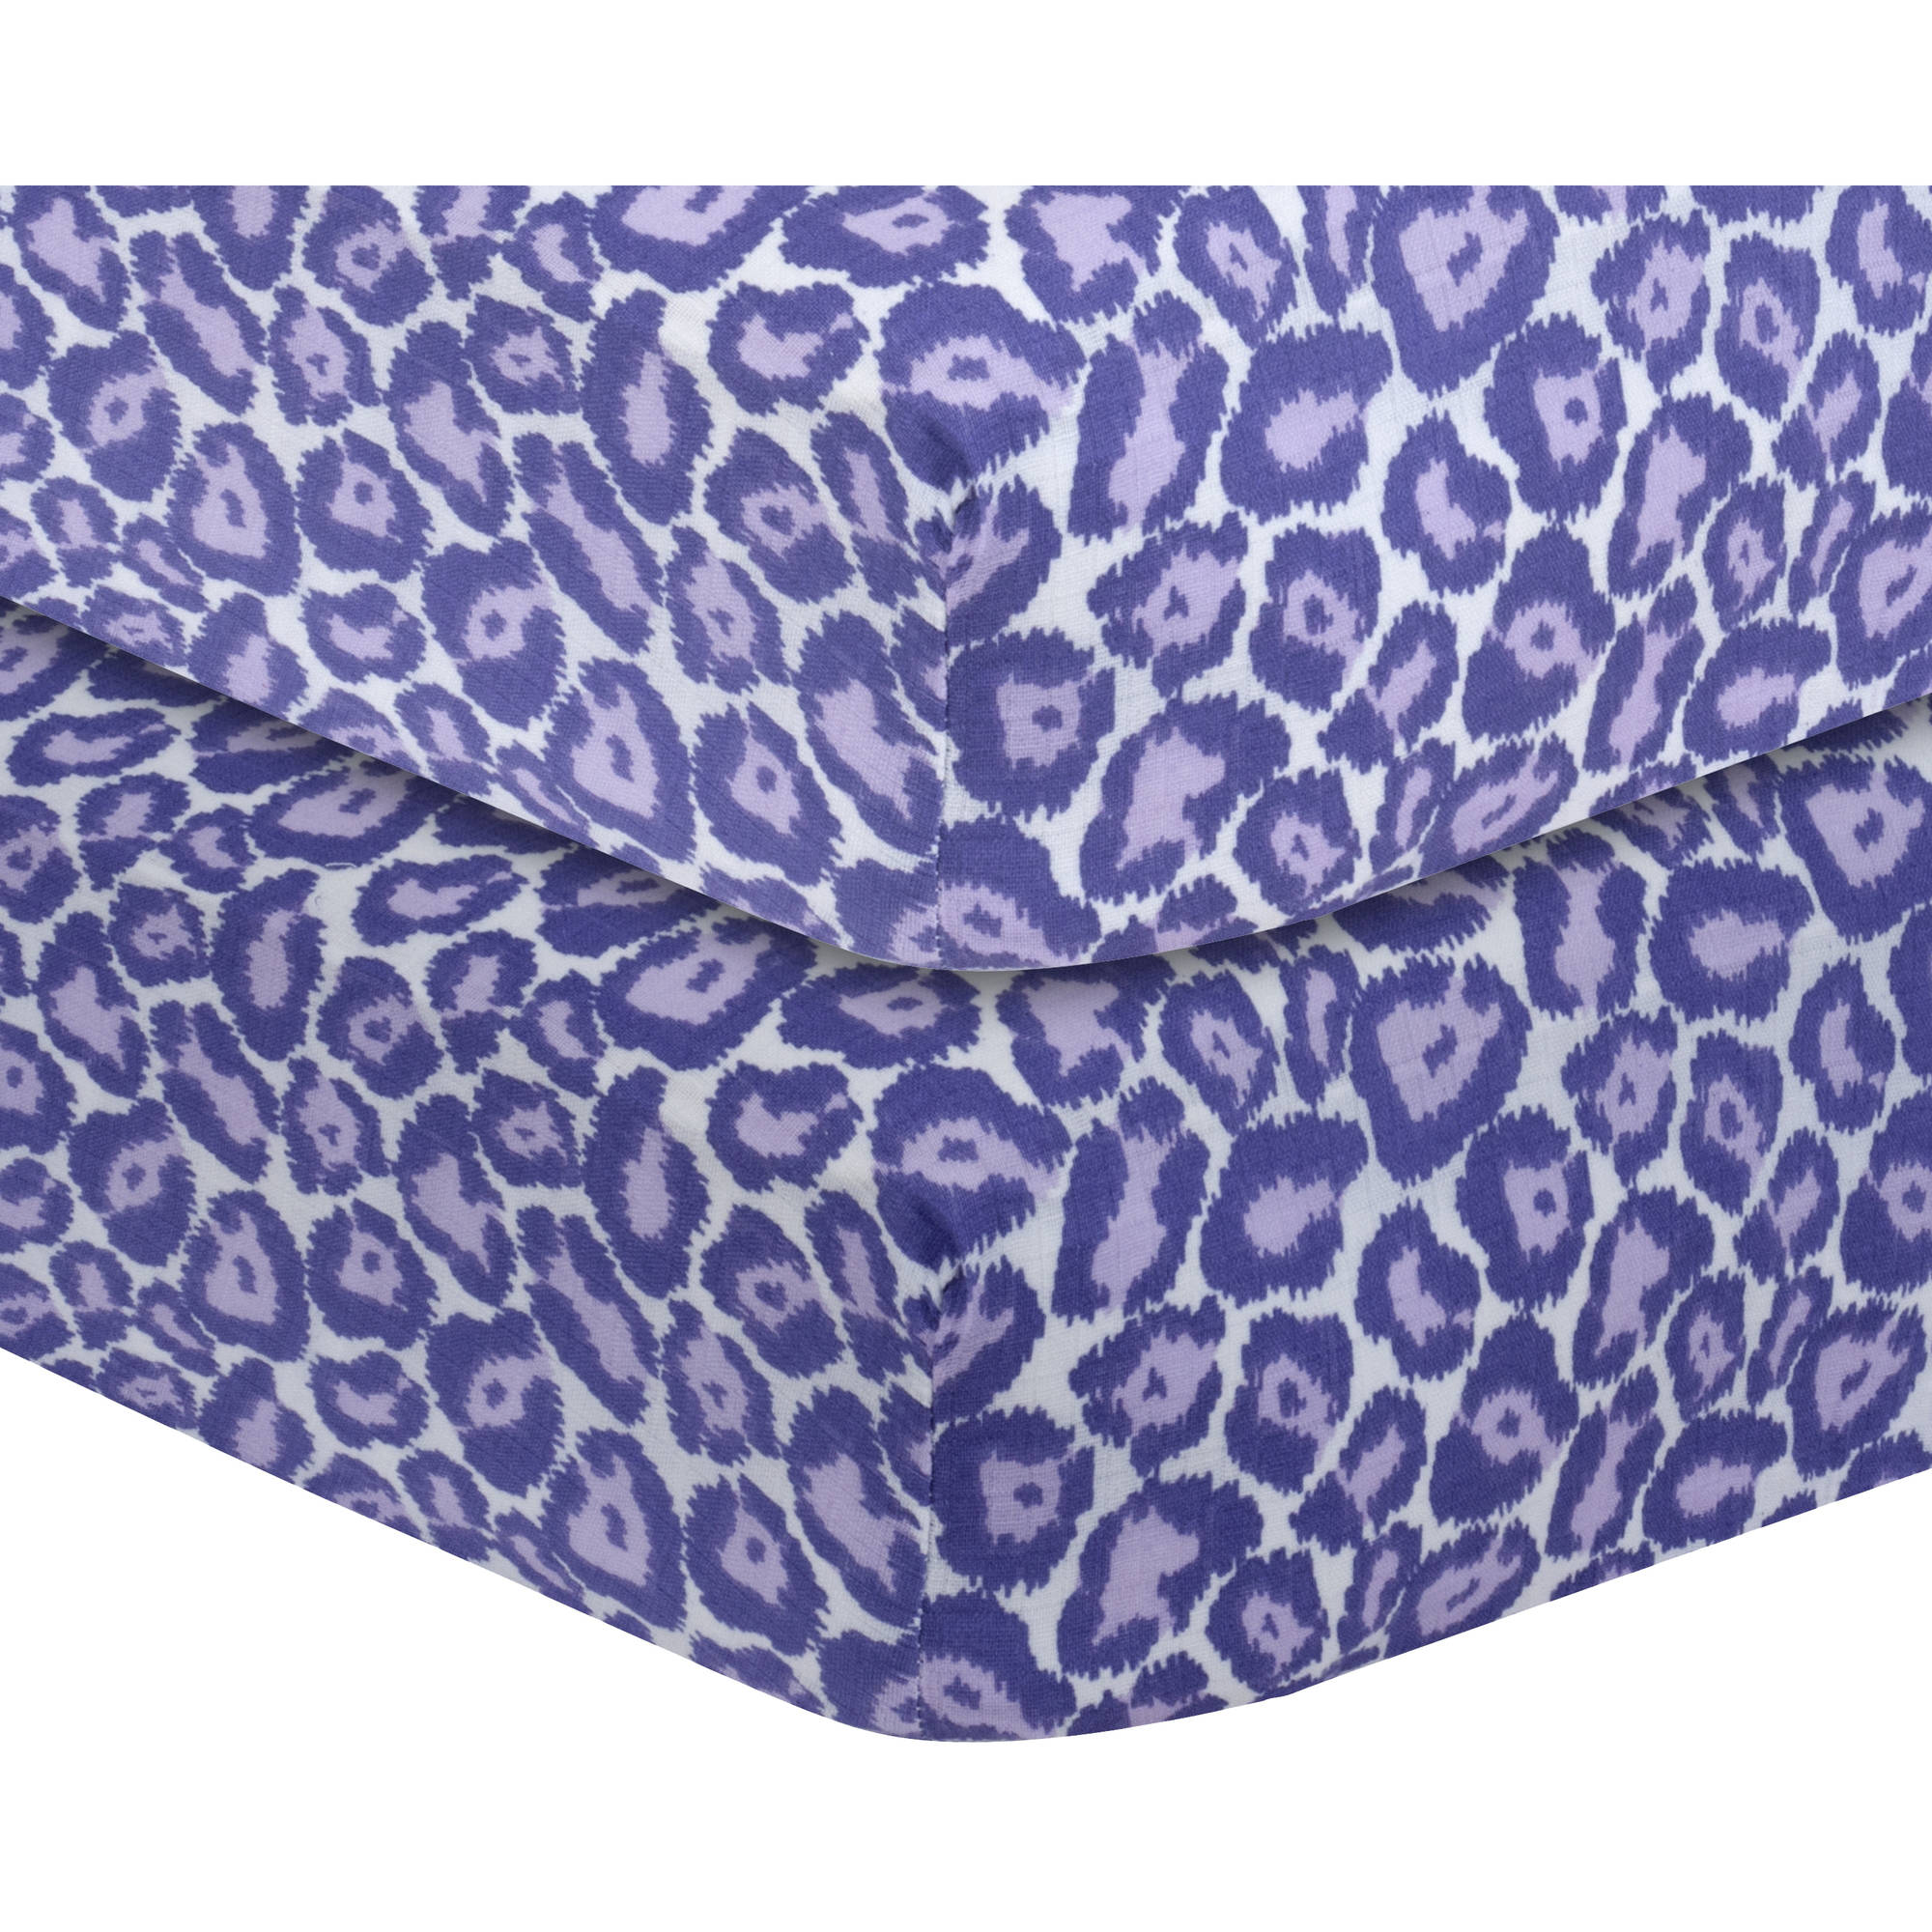 Bacati - Ikat Leopard Crib/Toddler Bed Fitted Sheets 100% Cotton Muslin 2 Pack, Purple